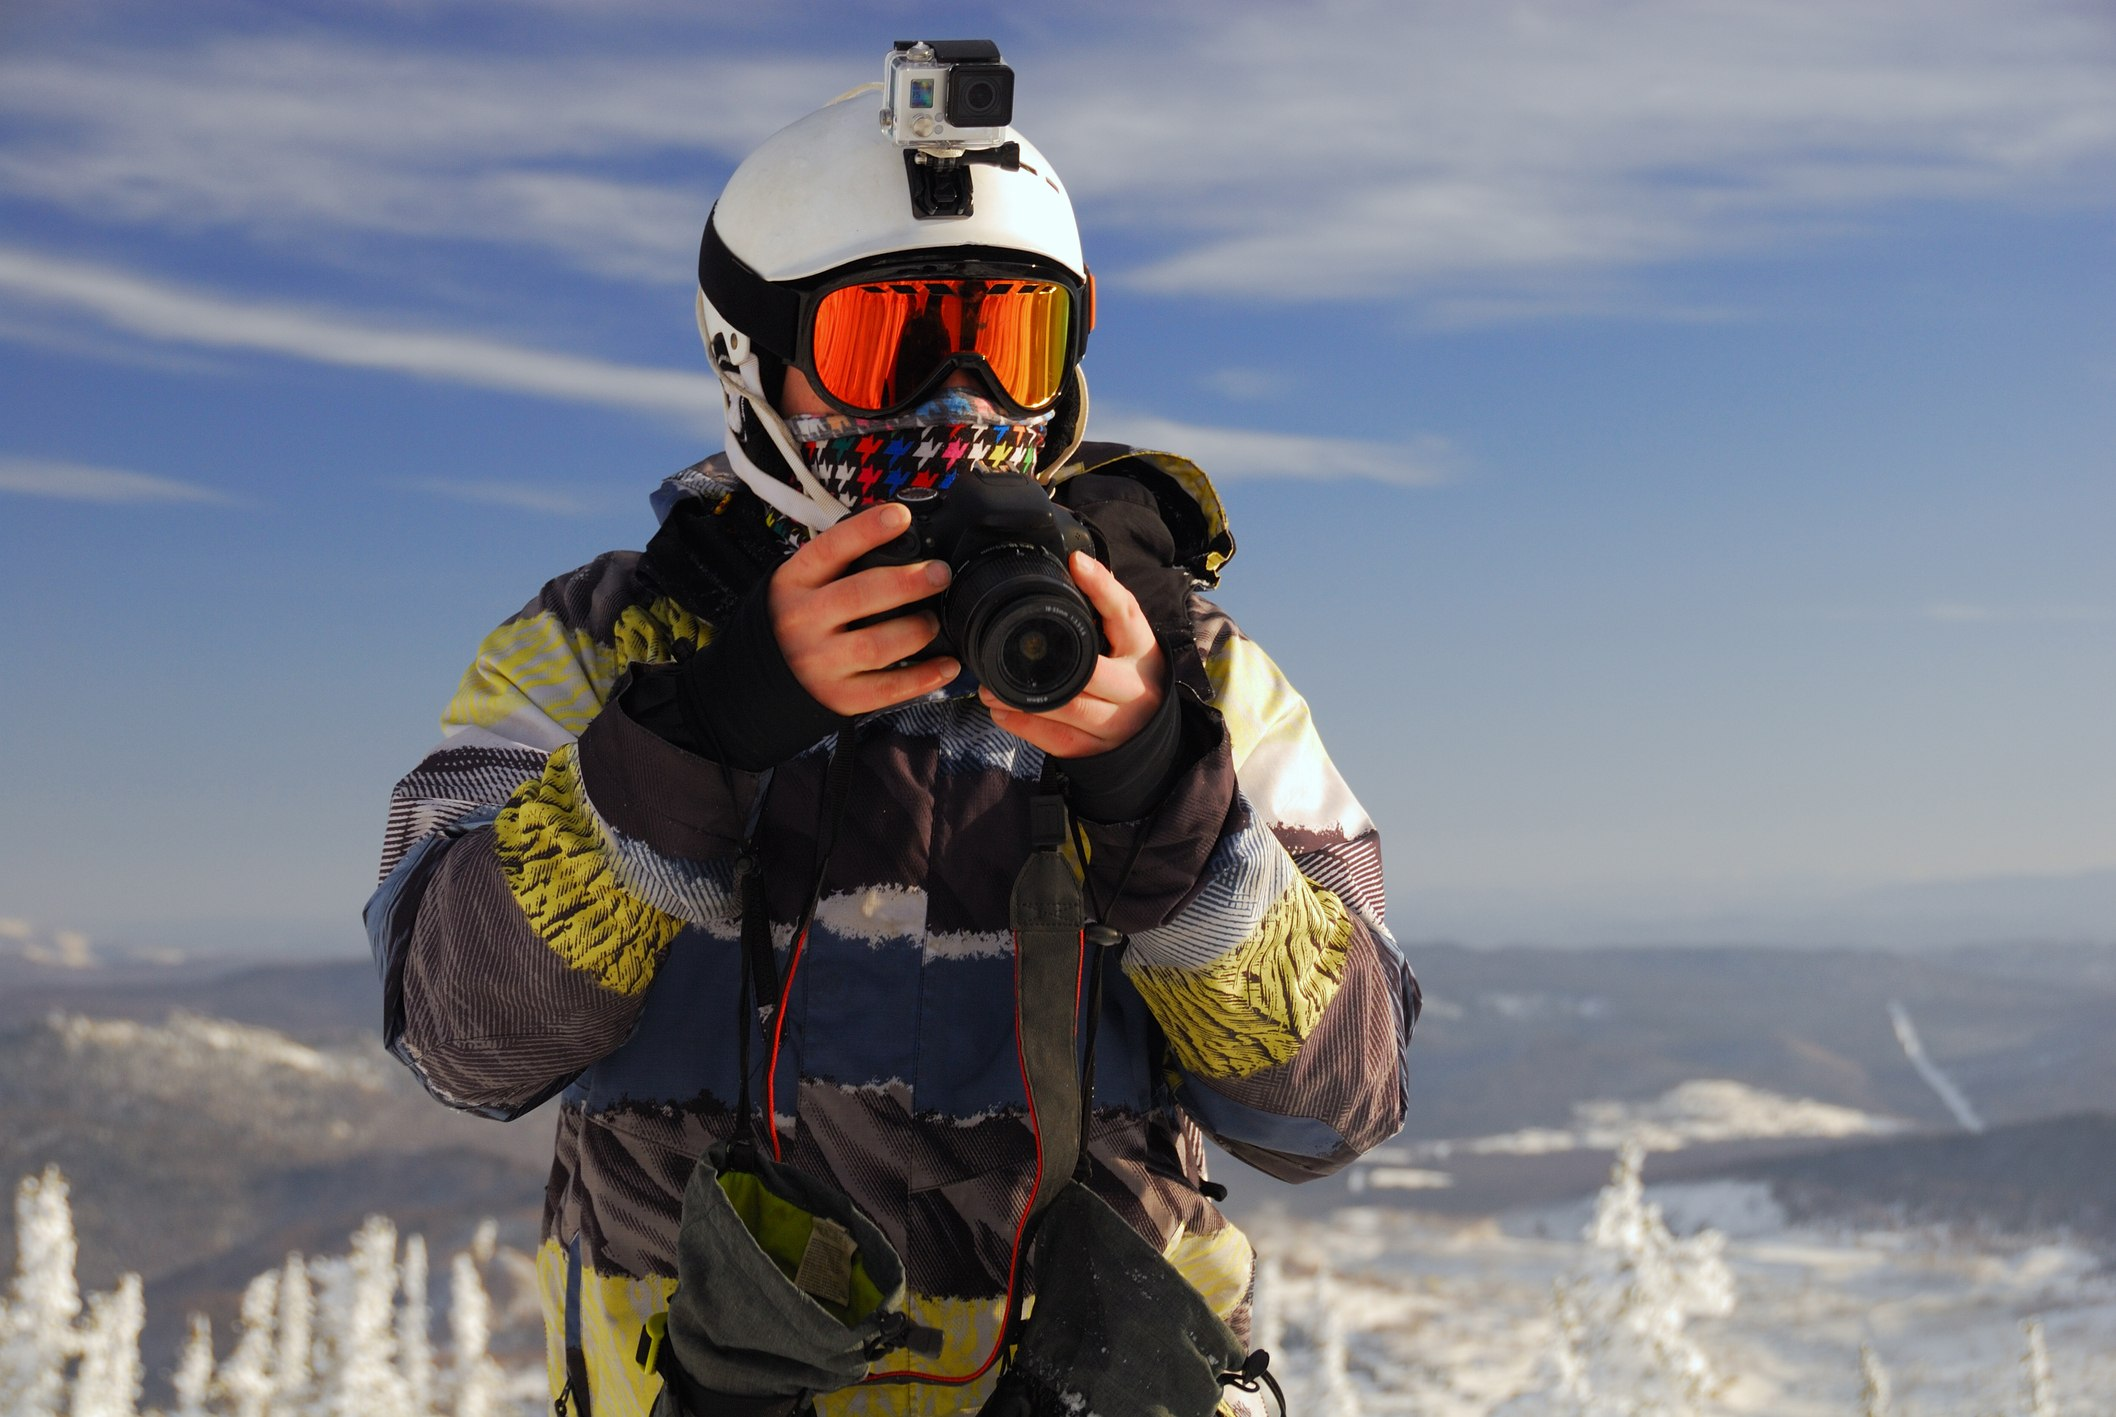 Snowboarder with camera